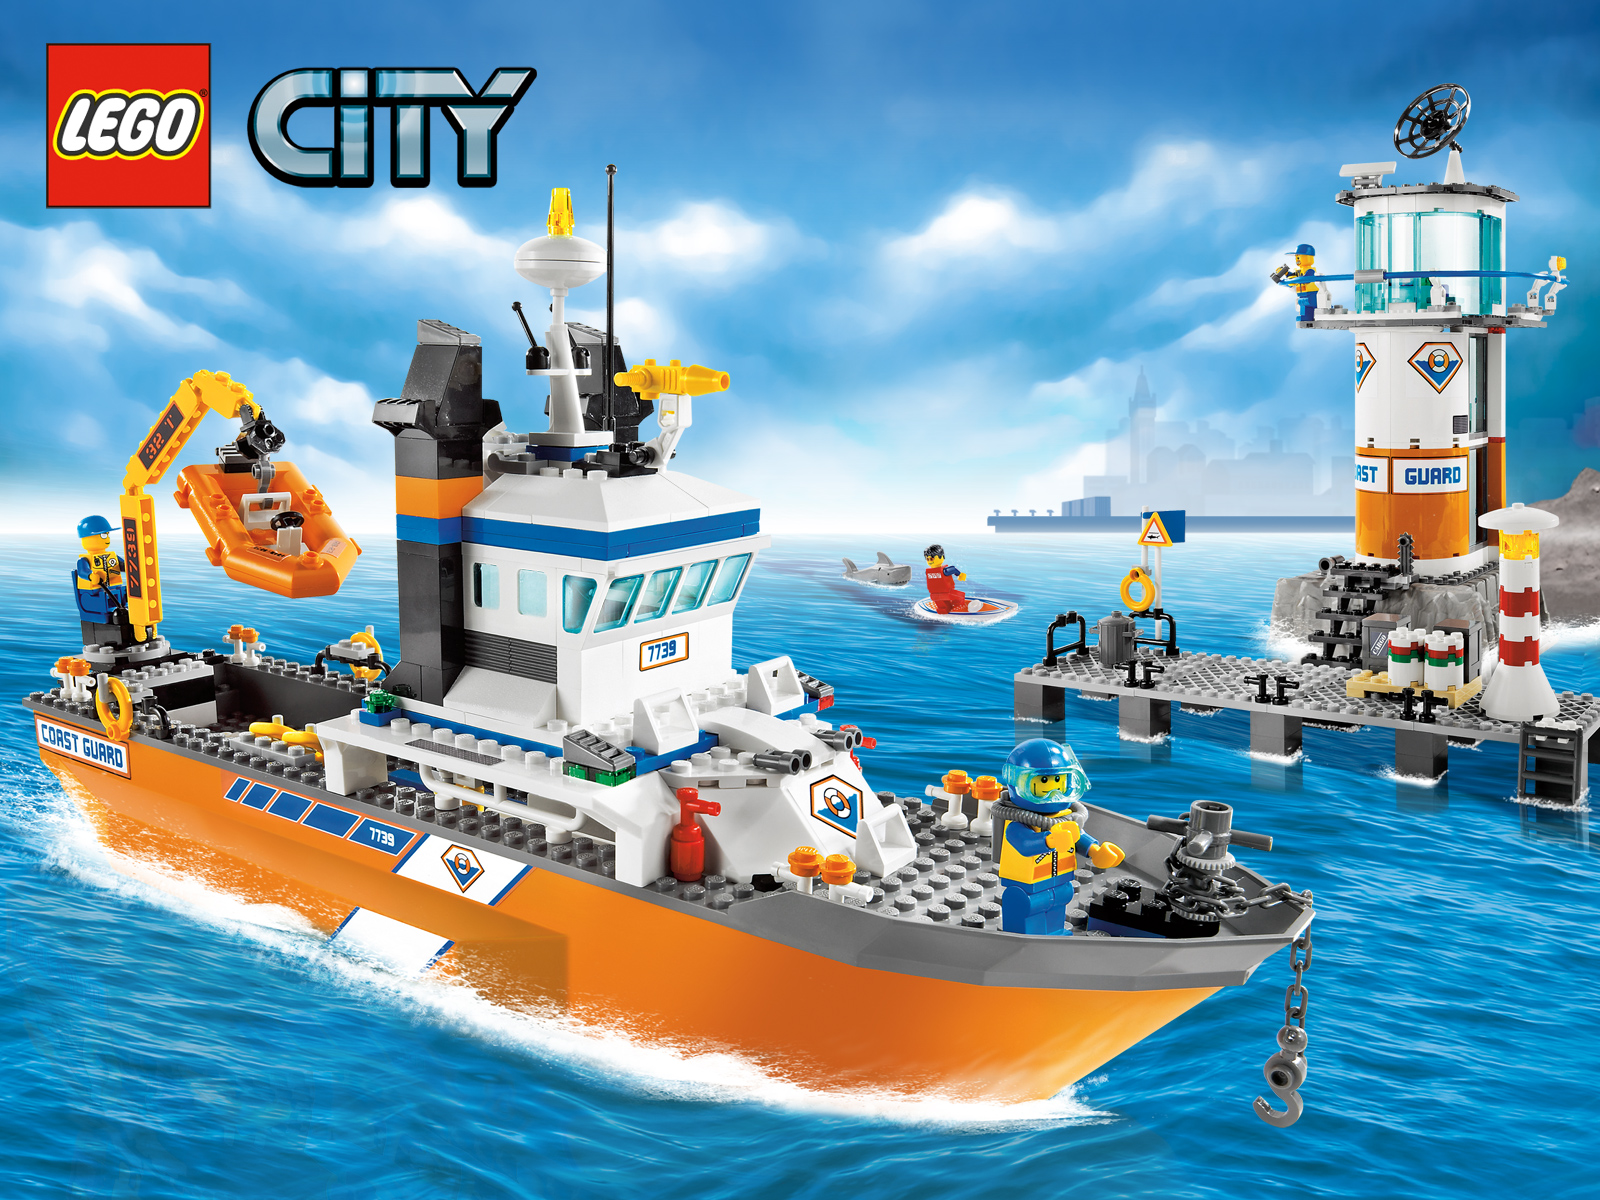 Lego City | Free Desktop Wallpapers for Widescreen, HD and ...